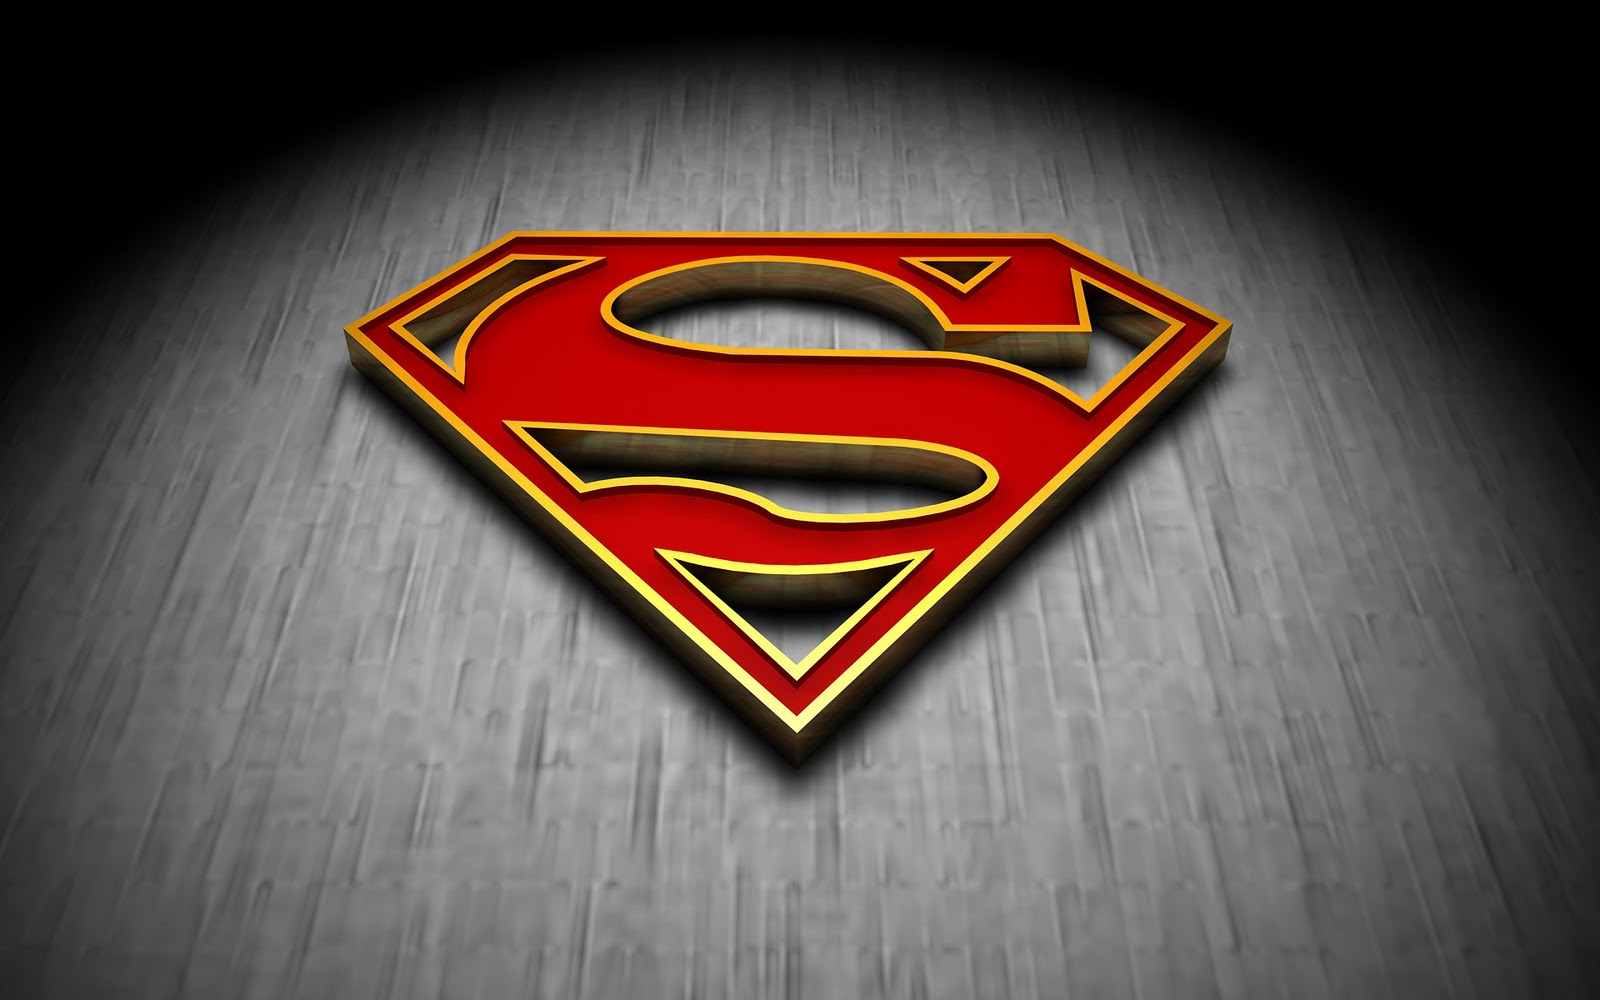 Superman achtergronden hd superman wallpapers afbeelding 3jpg 1600x1000